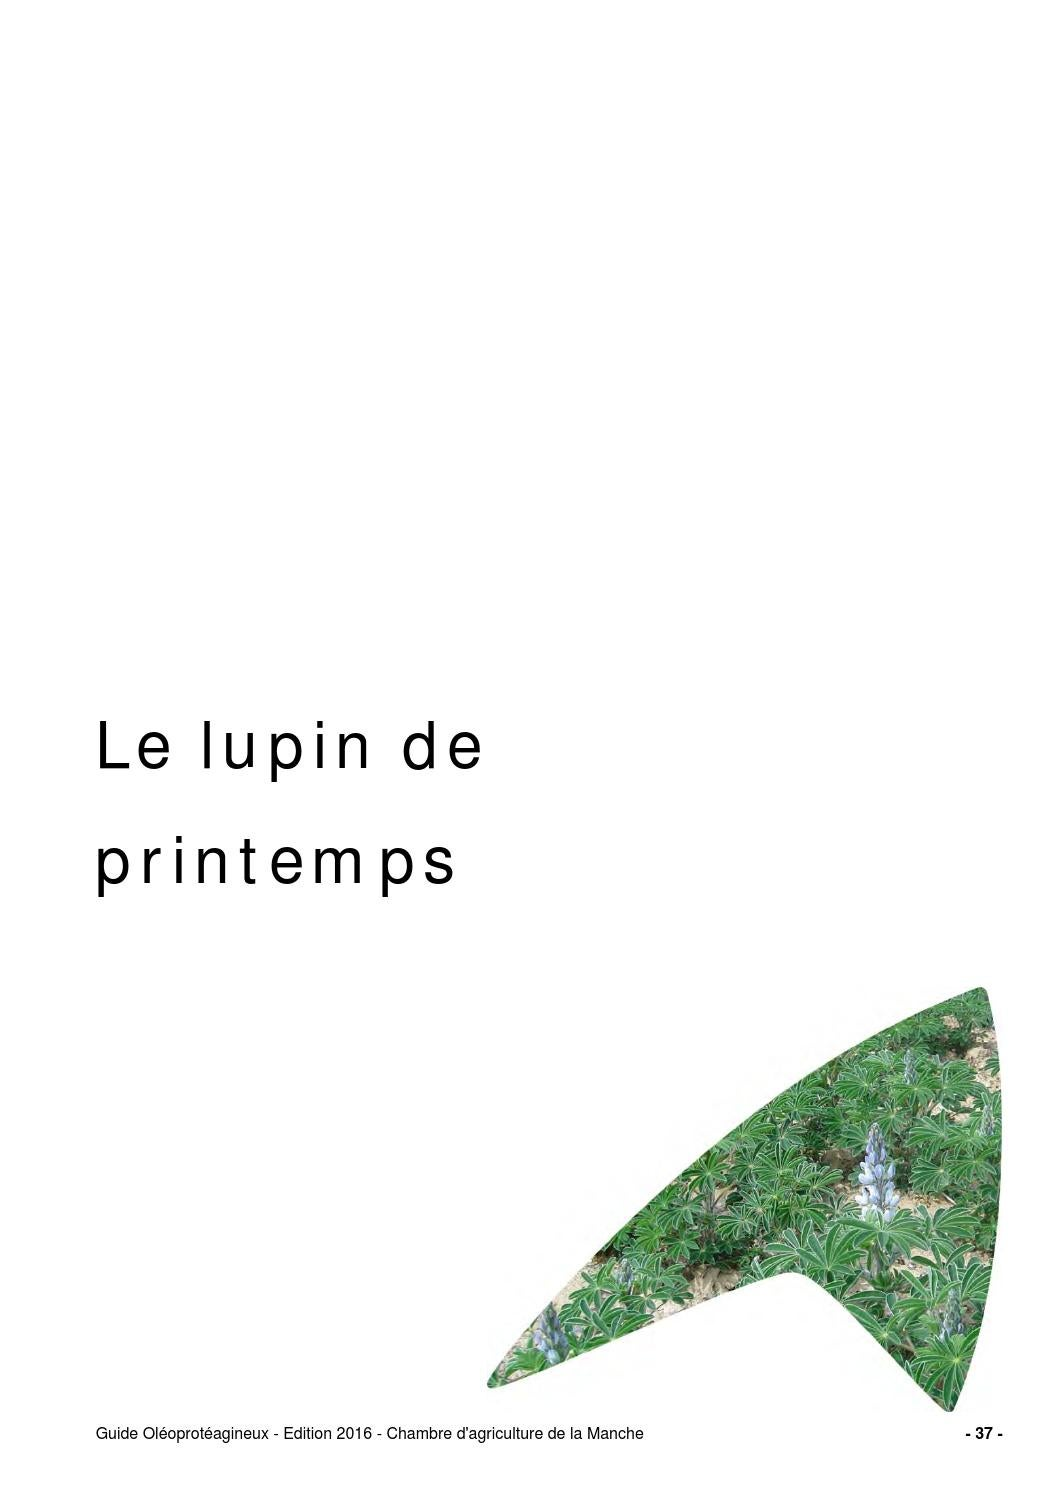 Guide lupin de printemps 2015 by chambre d 39 agriculture for Chambre d agriculture 37